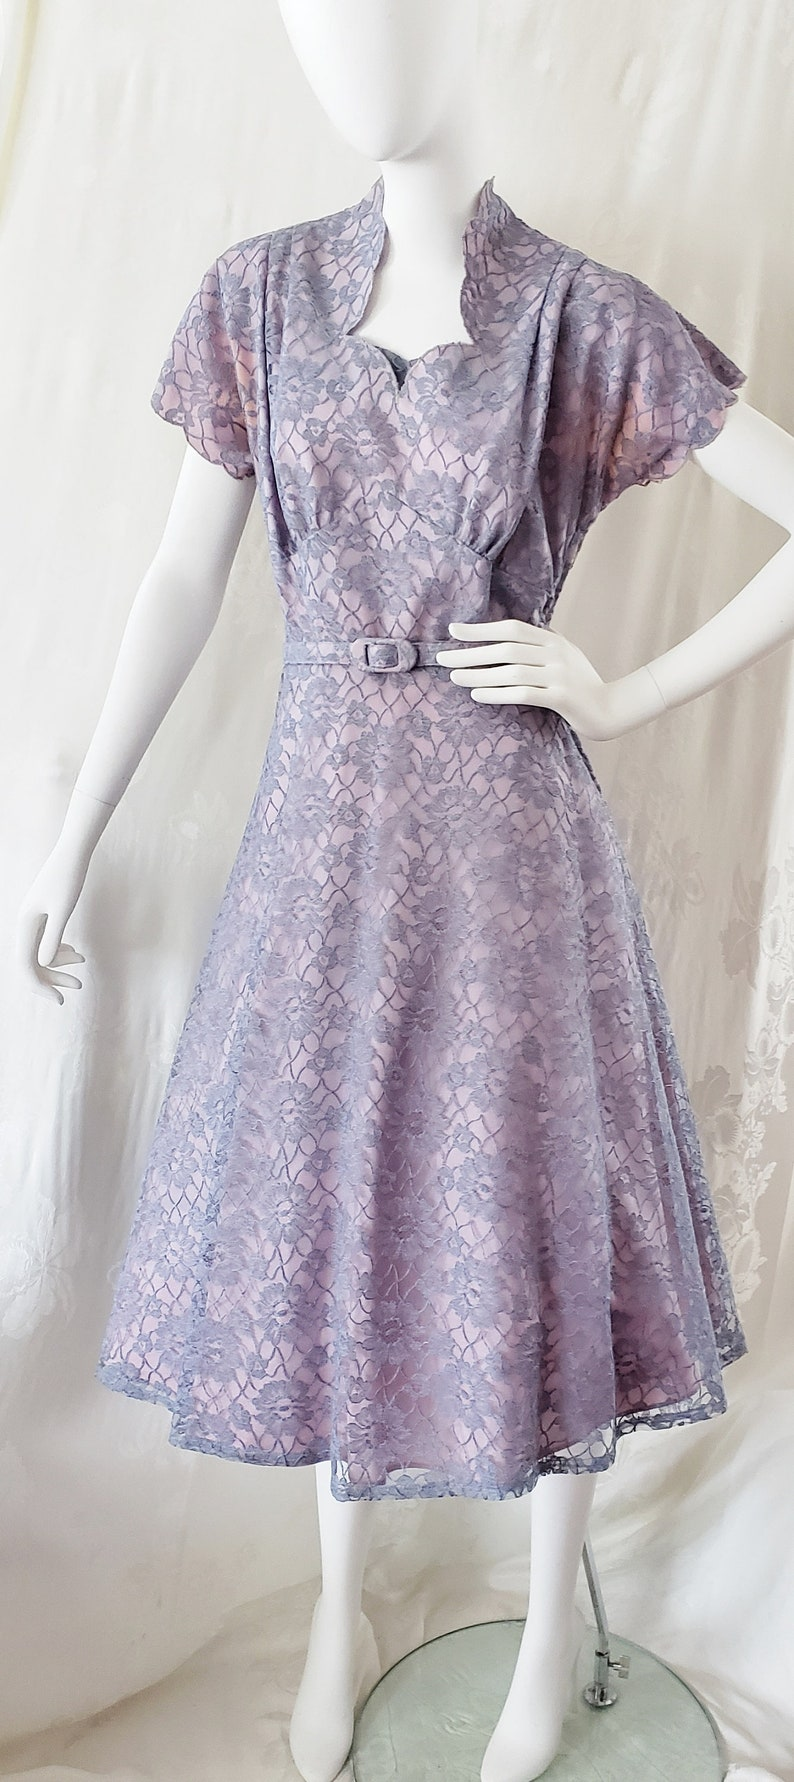 500 Vintage Style Dresses for Sale | Vintage Inspired Dresses 1950s Tea Dress of Lovely Lace SophisticatedLaRue $72.00 AT vintagedancer.com